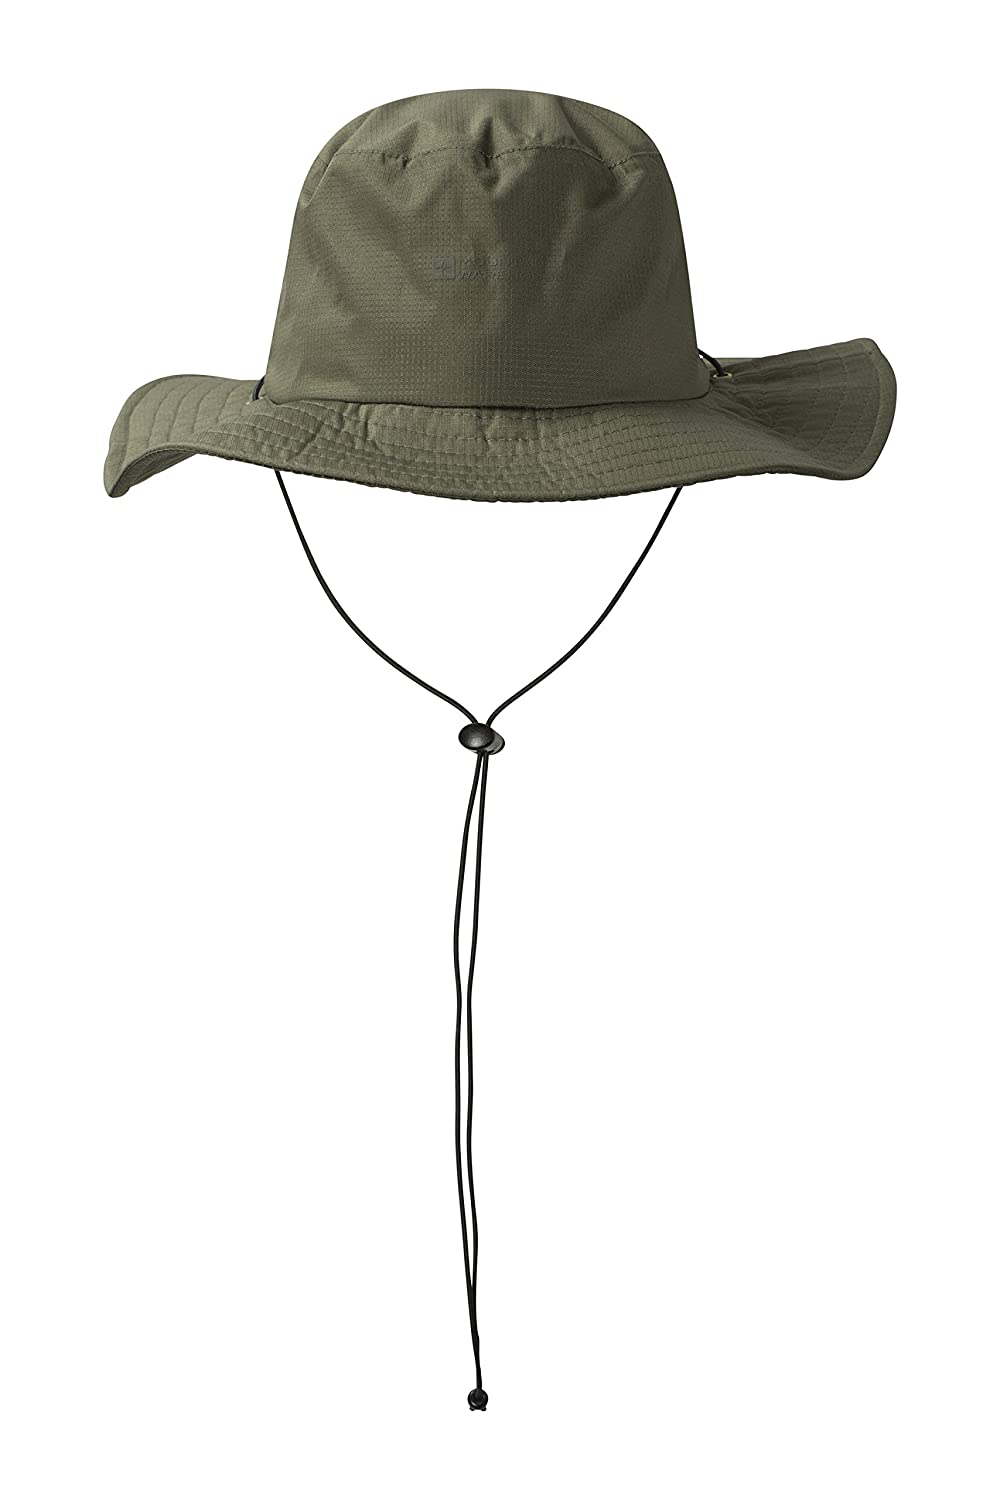 Mountain Warehouse Australian Wide Brimmed Waterproof Hat - UPF50+ UV Protection, Sweatband Summer Cap, Taped Seams - Men & Women - For Hiking, Camping, Travelling Travelling Khaki 021475026001